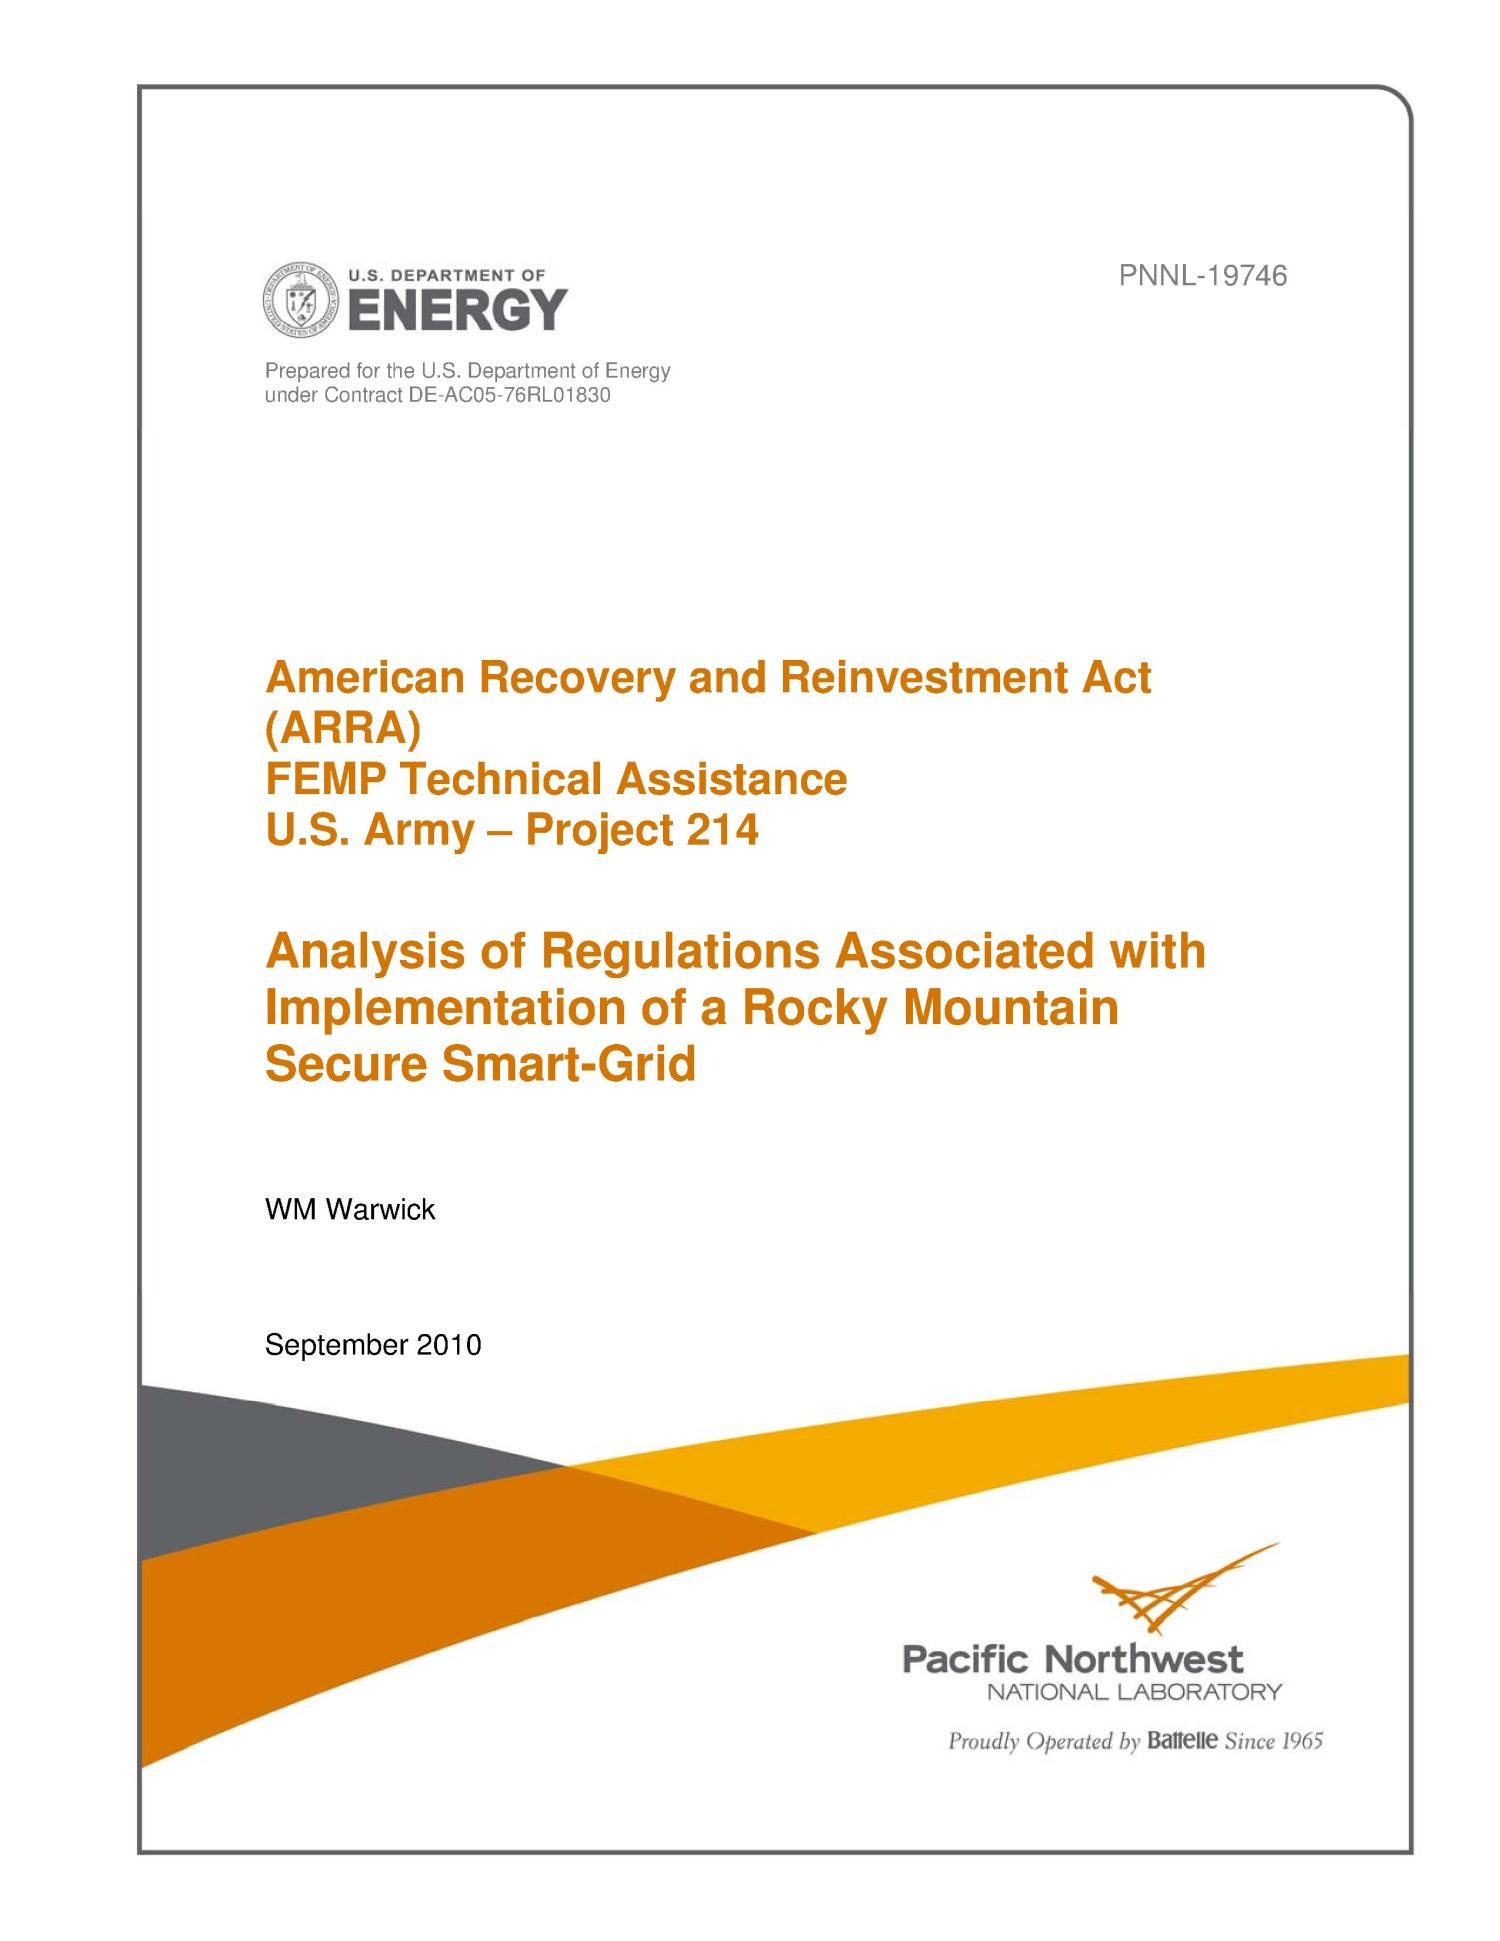 American Recovery and Reinvestment Act (ARRA) FEMP Technical Assistance U.S. Army – Project 214 Analysis of Regulations Associated with Implementation of a Rocky Mountain Secure Smart-Grid                                                                                                      [Sequence #]: 1 of 54